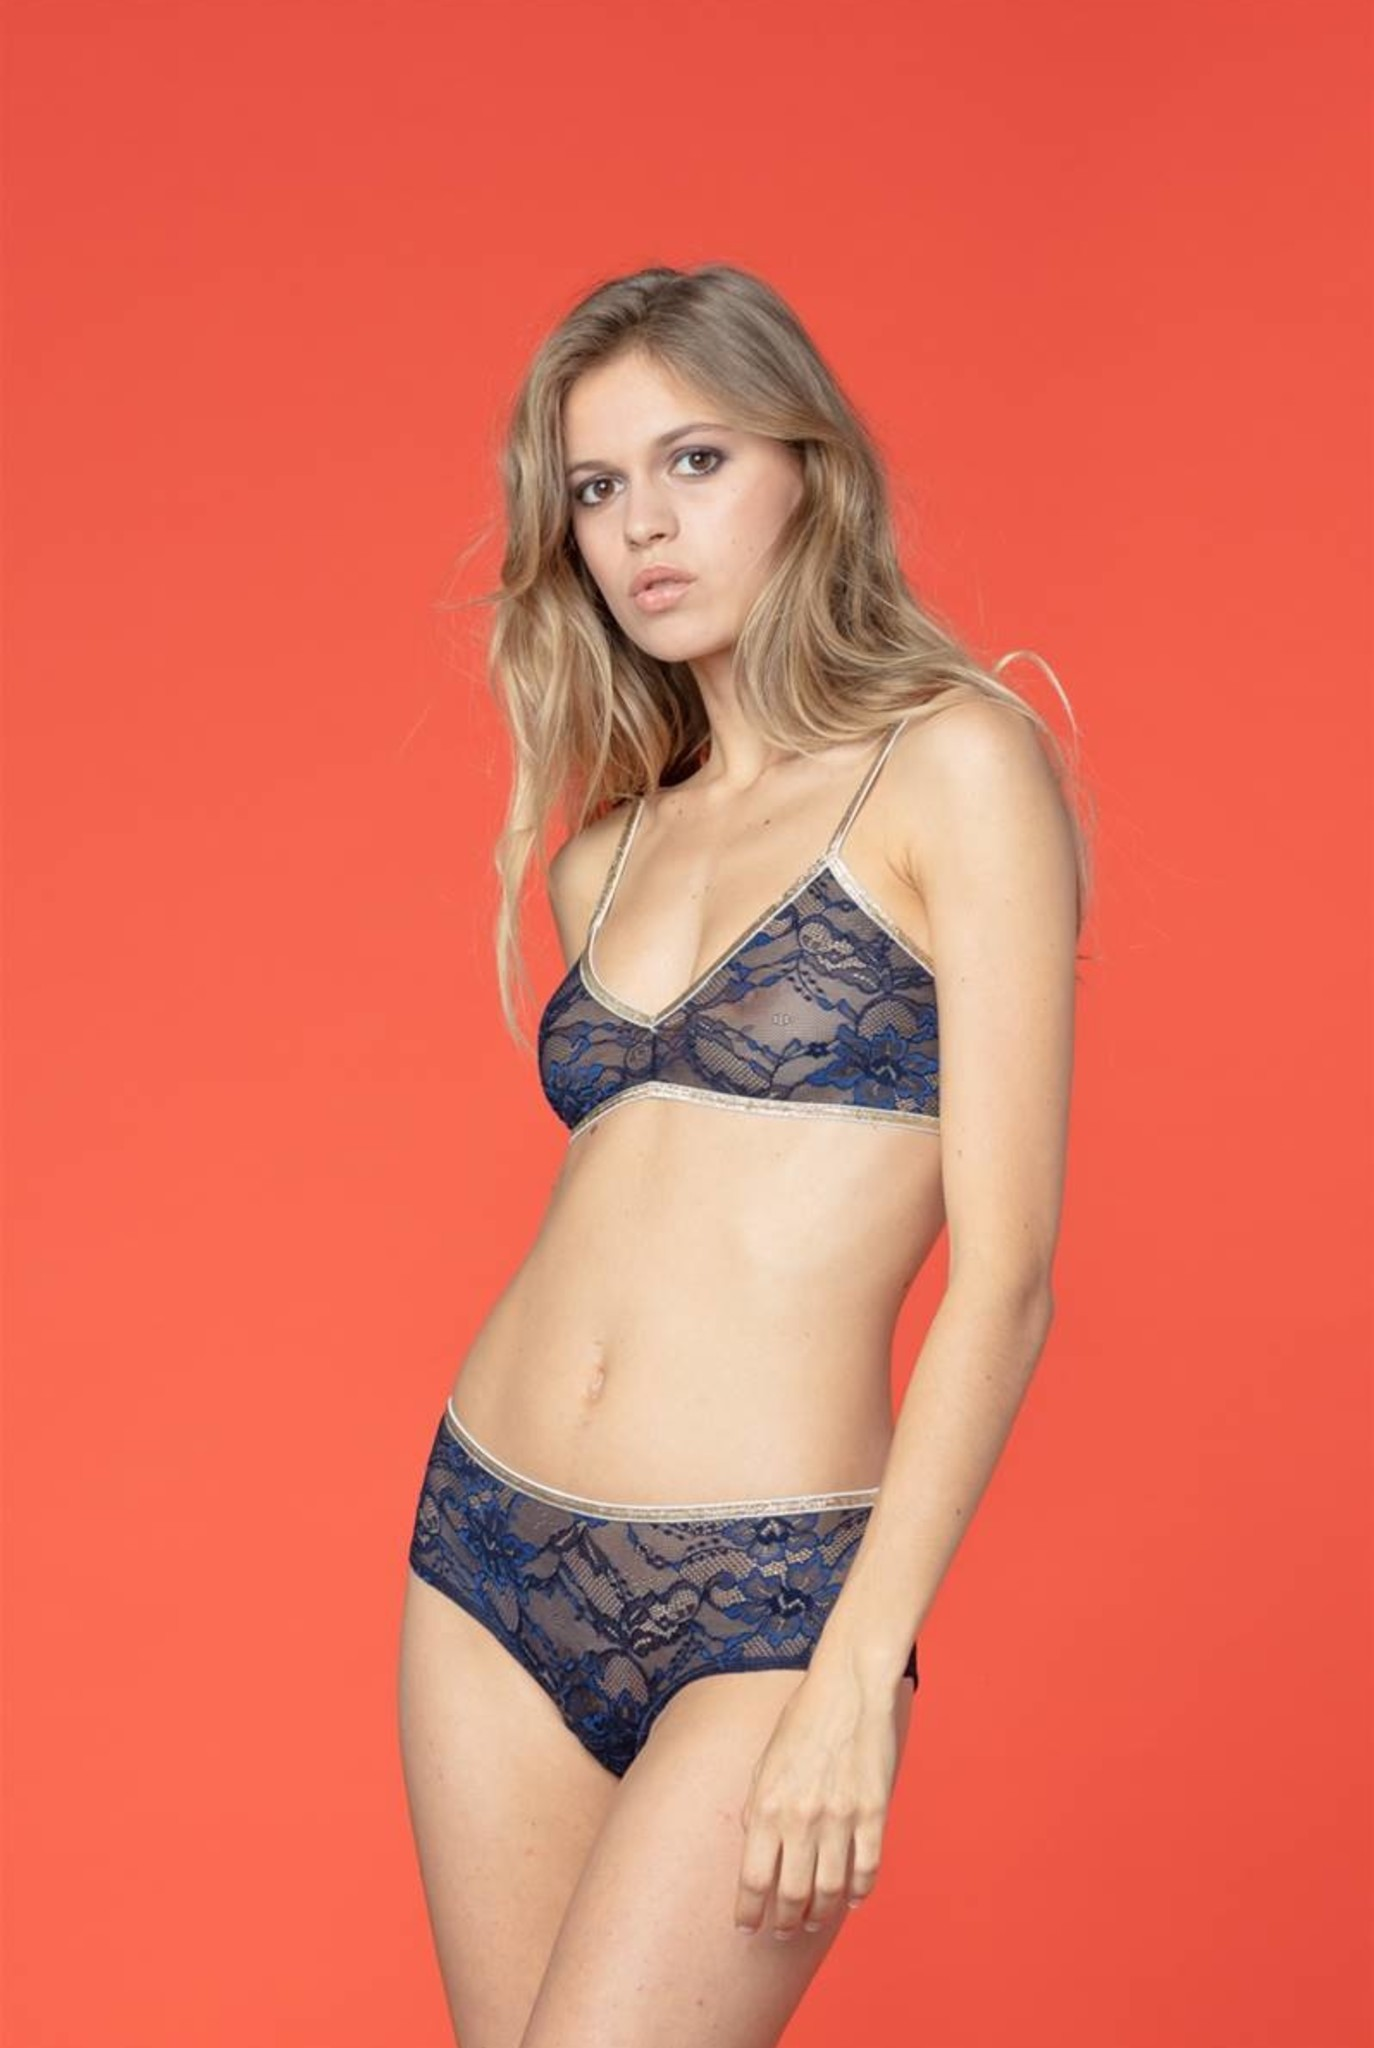 Georgia shorty navy lace